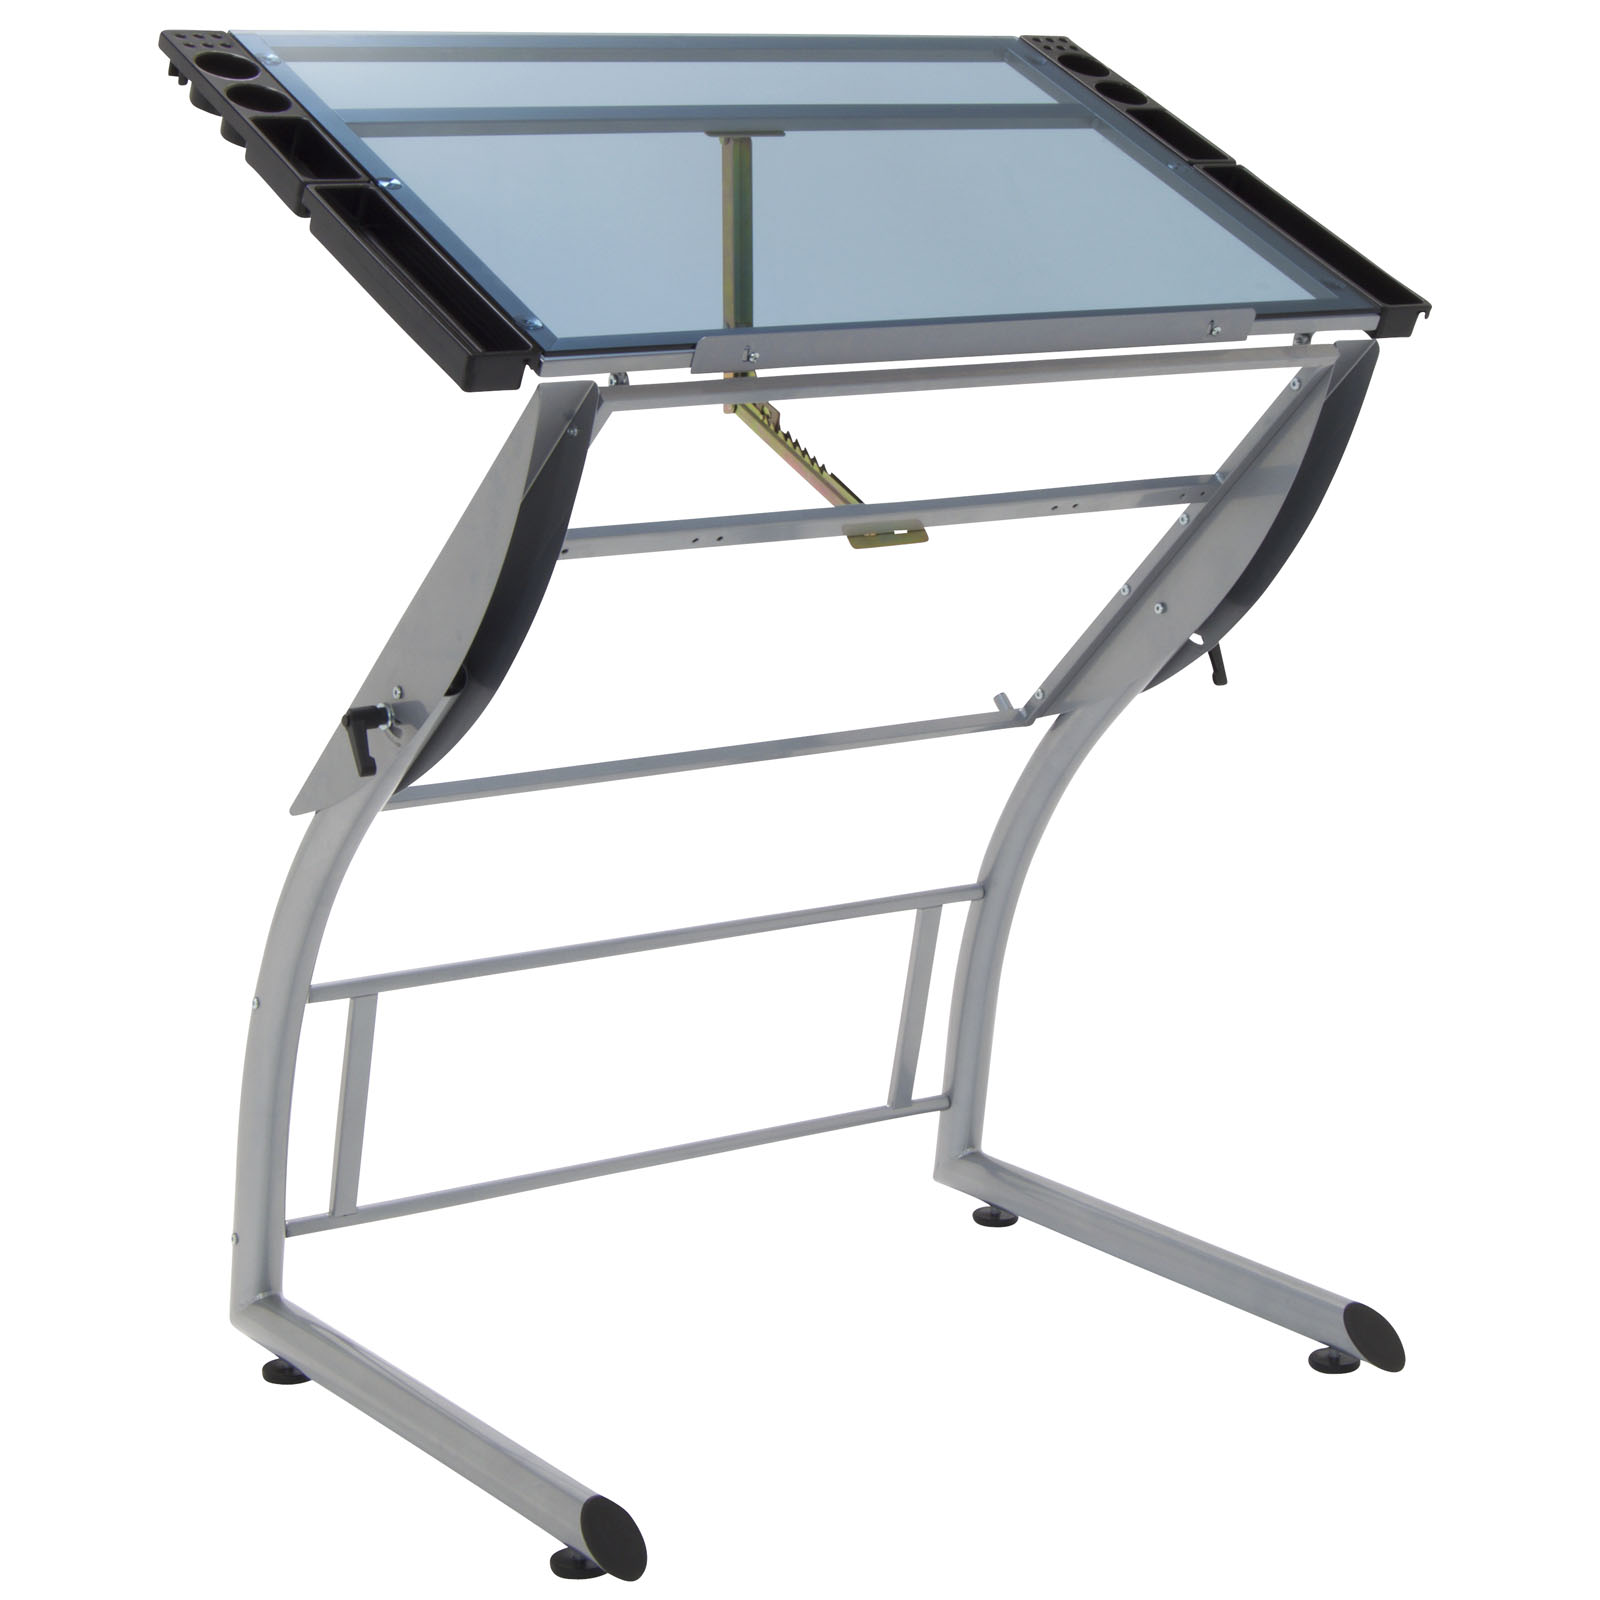 Triflex Height Adjustable Metal And Glass Drawing Table In Silver/Blue Glass  U2013 Item # 10089